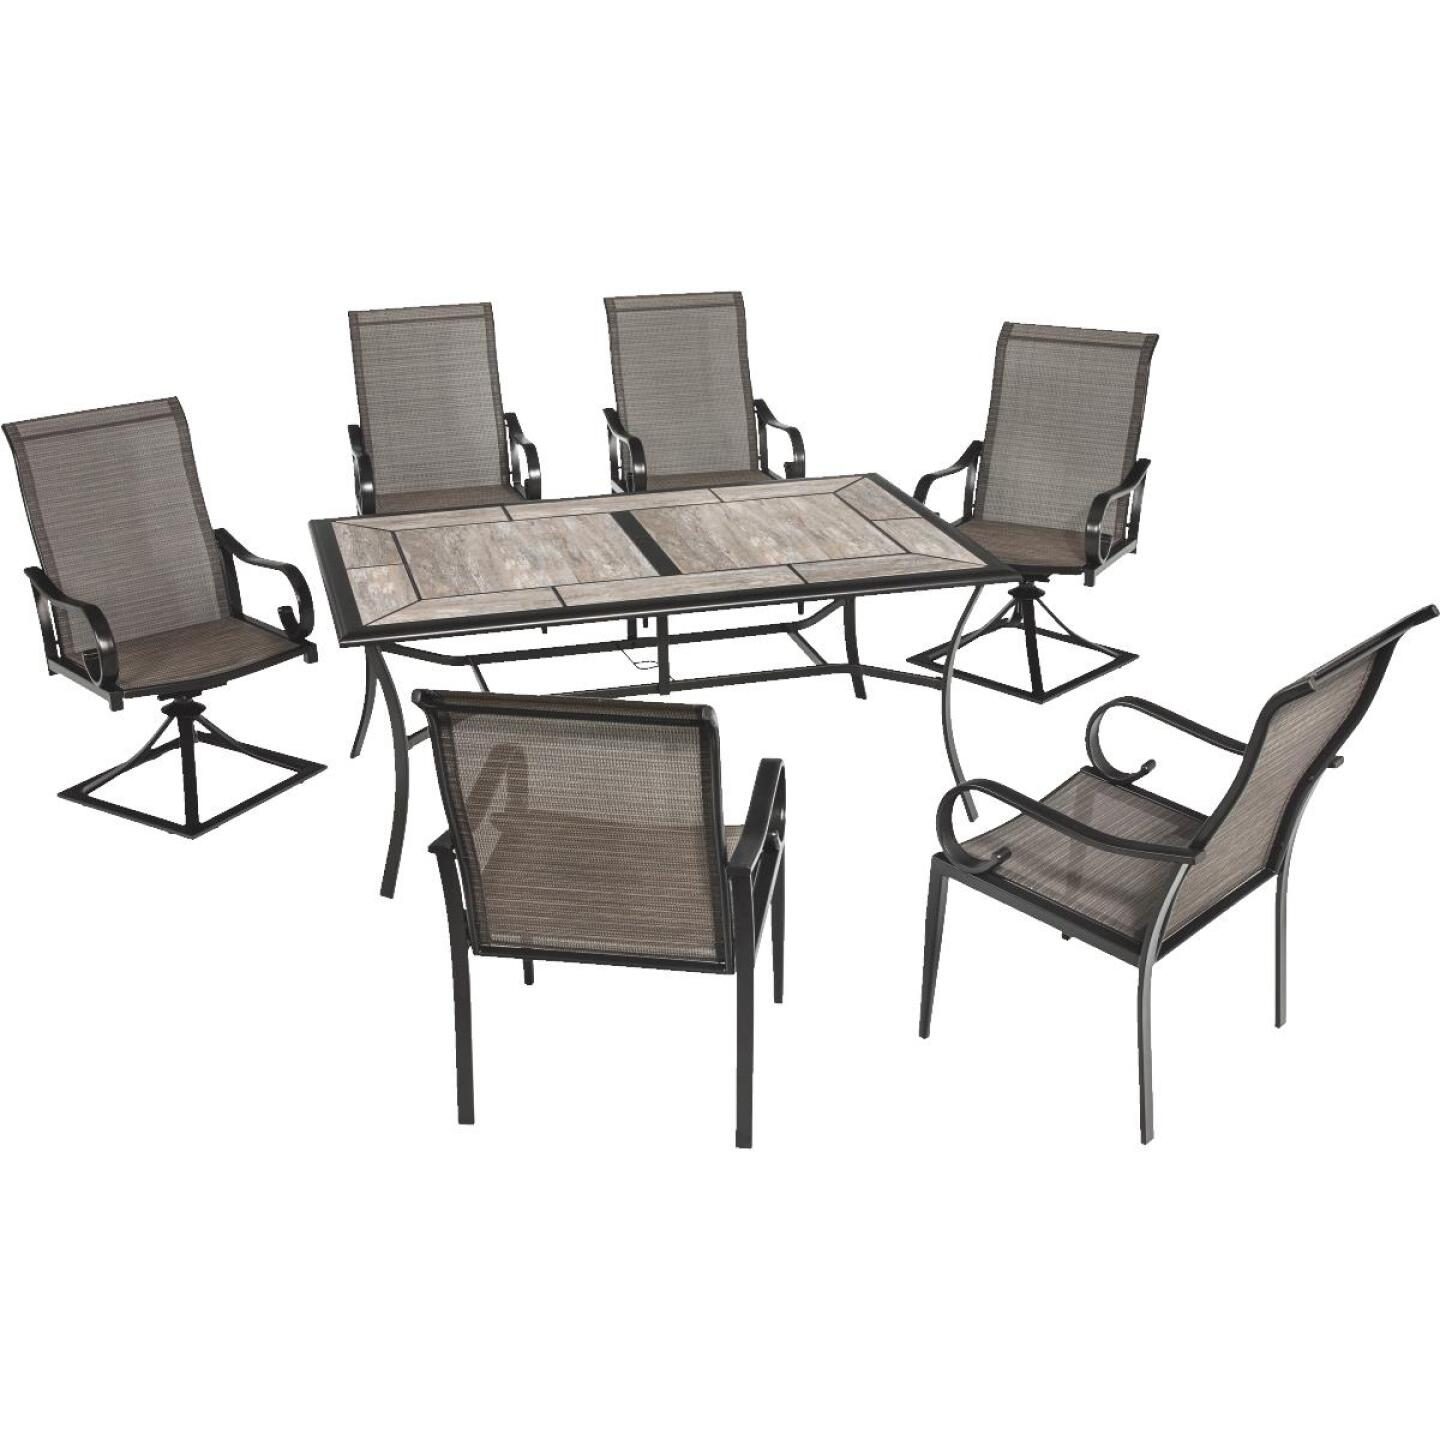 Outdoor Expressions Berkshire 7-Piece Dining Set Image 5